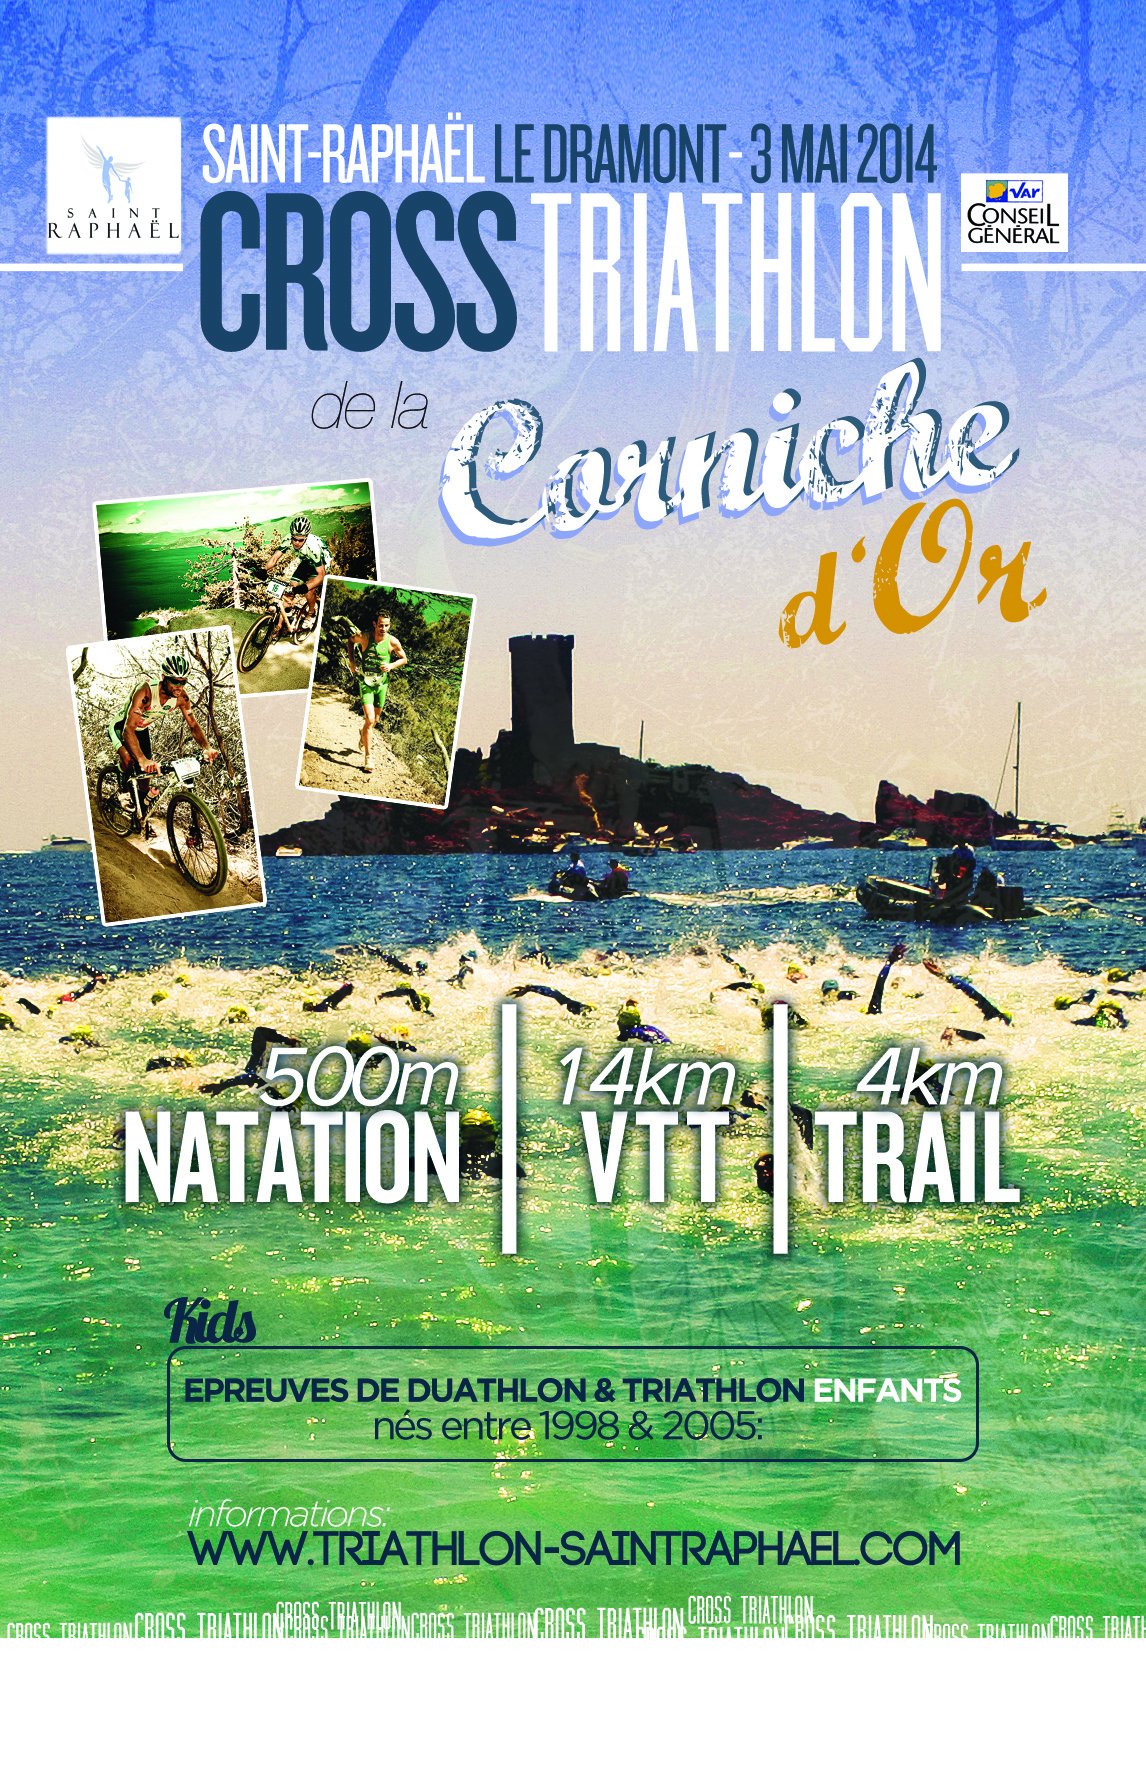 Rendez-vous le 3 mai au Cross triathlon de la Corniche d'Or‏